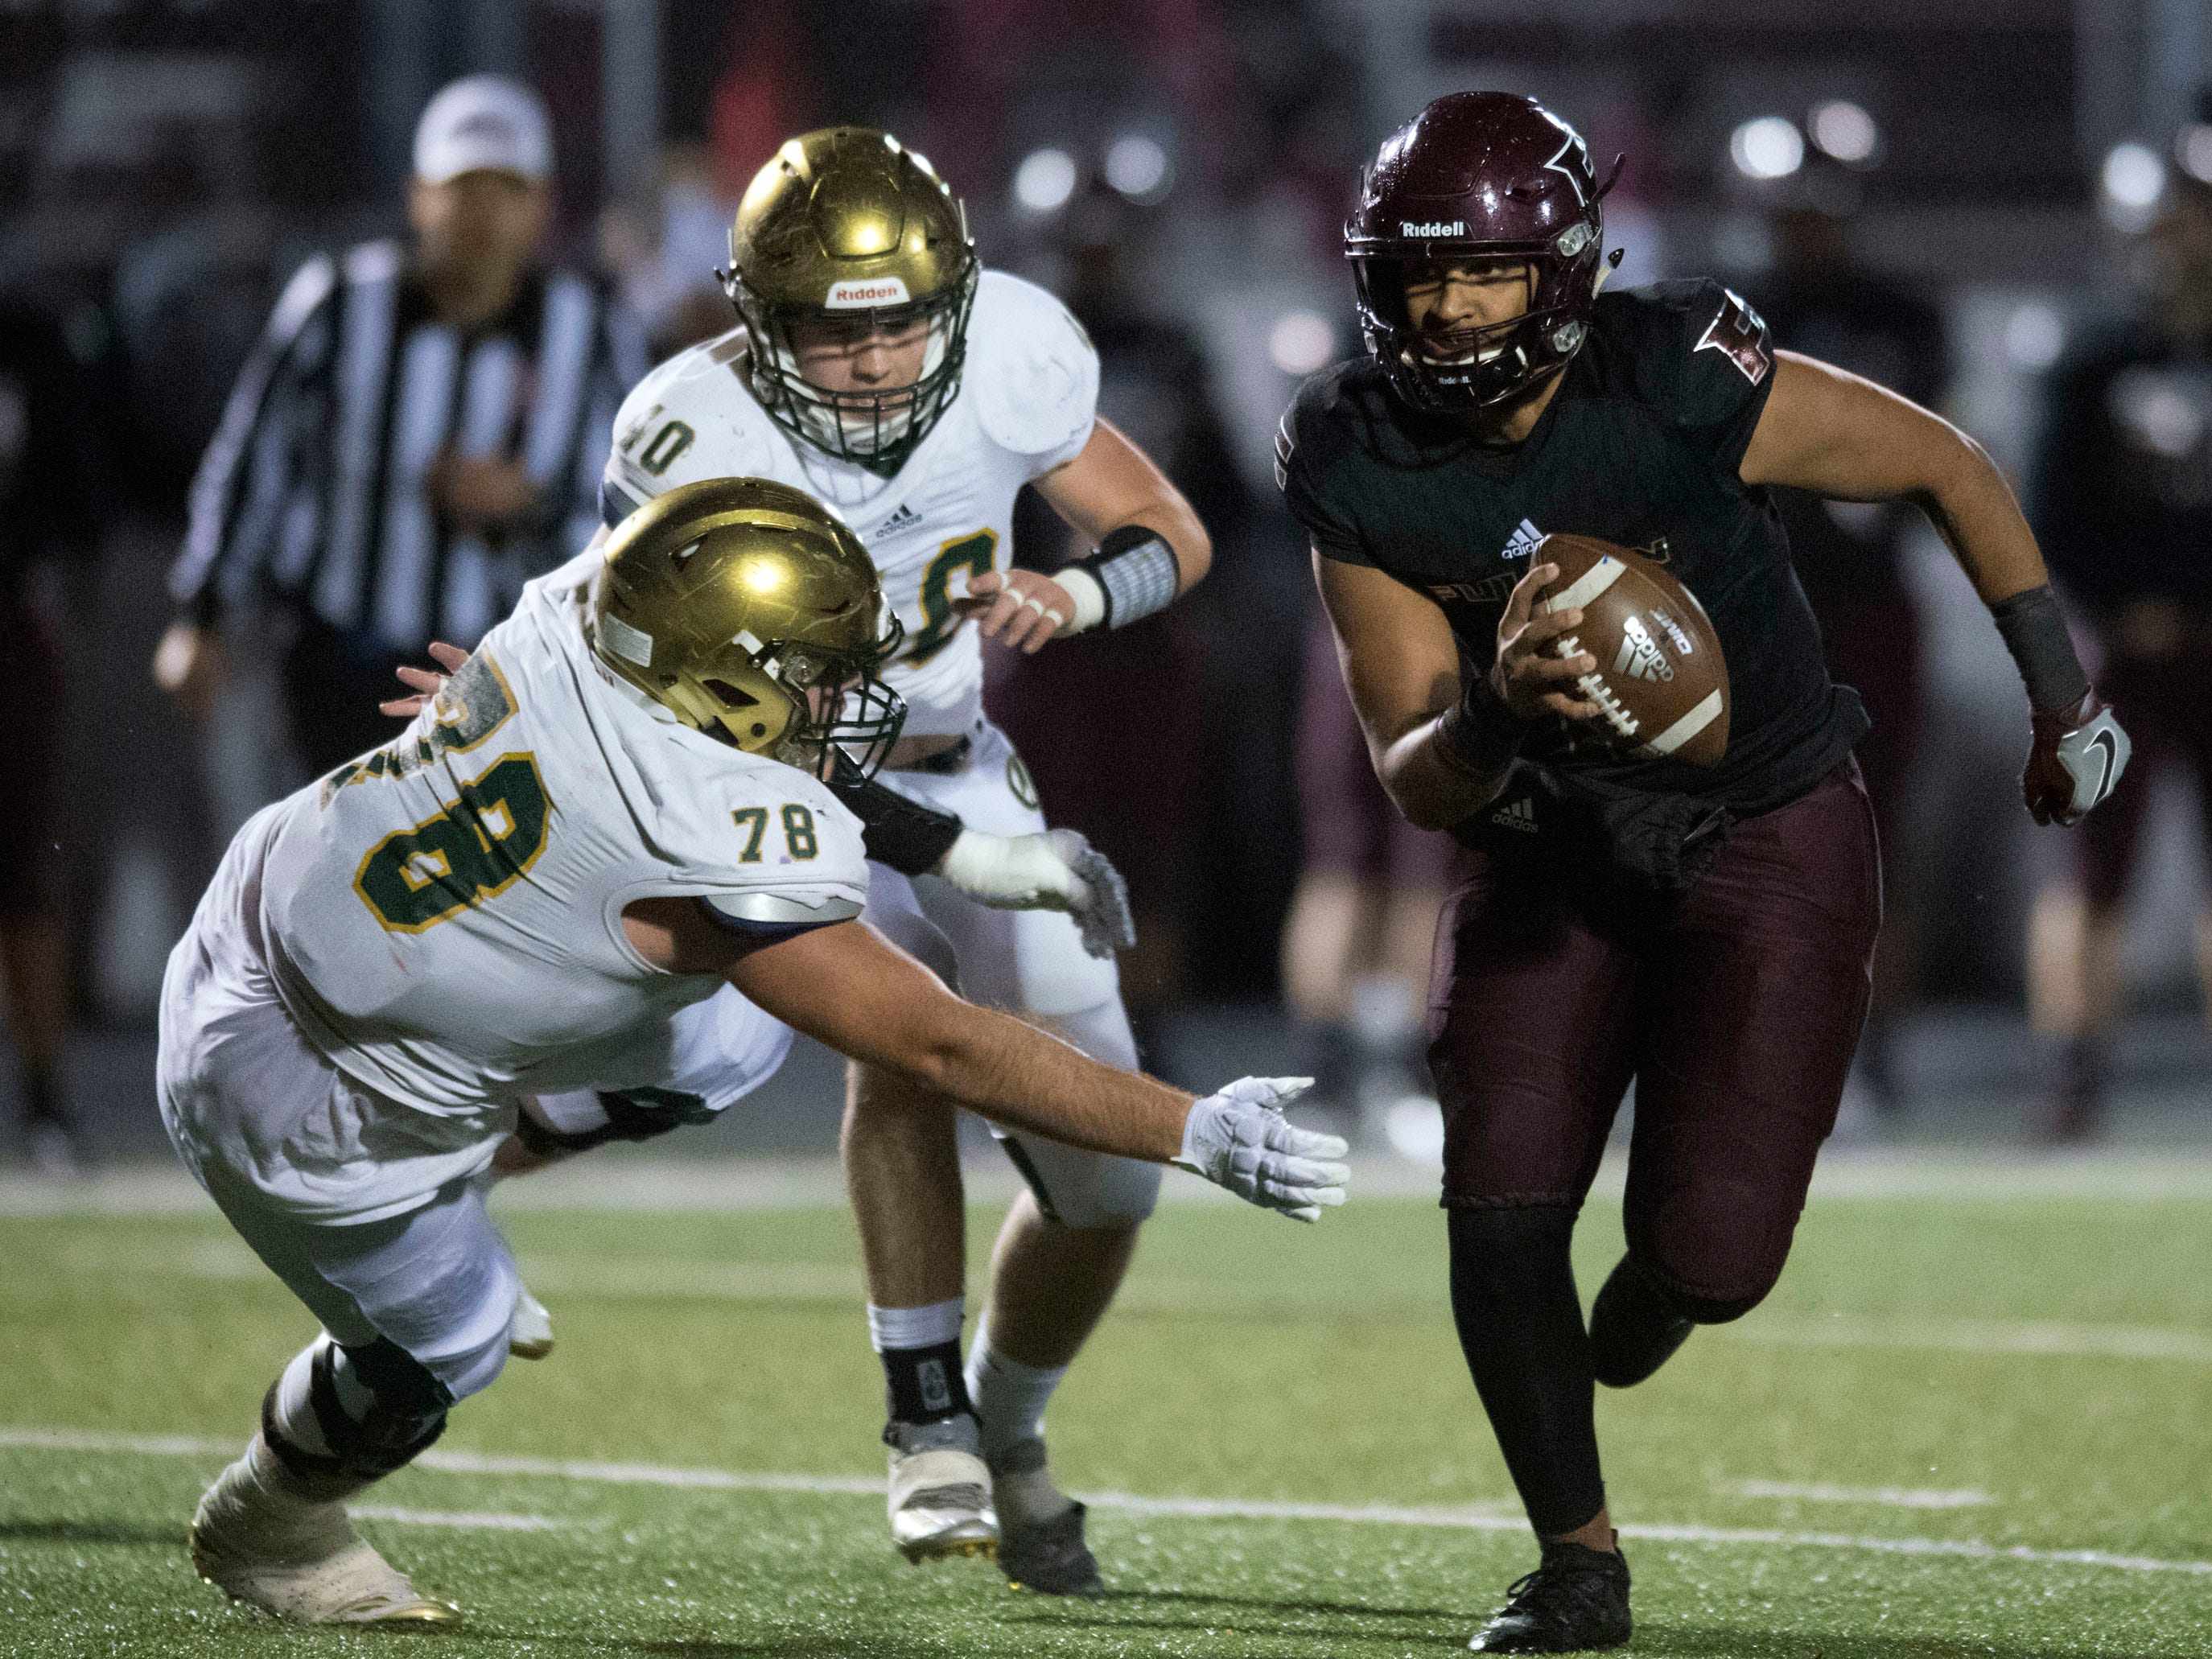 Fulton's Xavier Malone (1) runs the ball while pursued by Knoxville Catholic's Chris Torres (40) and Cooper Mays (78). Knoxville Catholic beat Fulton, 28-25 in the second round of the Class 5A playoffs on Friday, November 9, 2018.